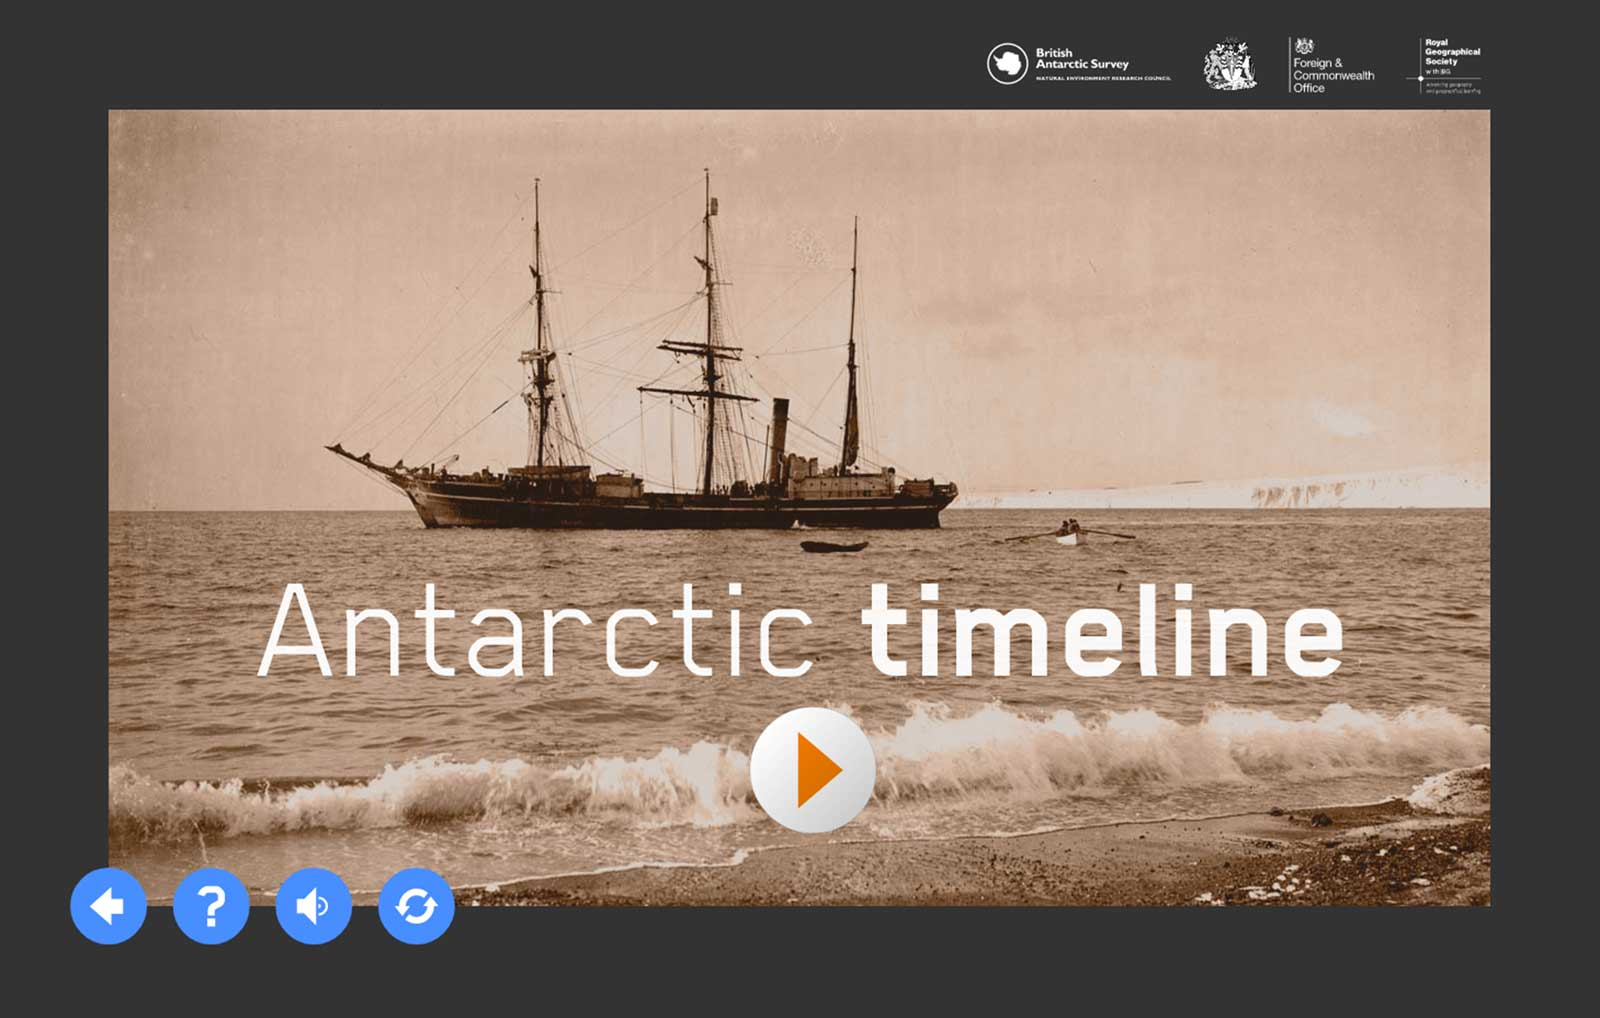 Antarctic timeline activity intro screen